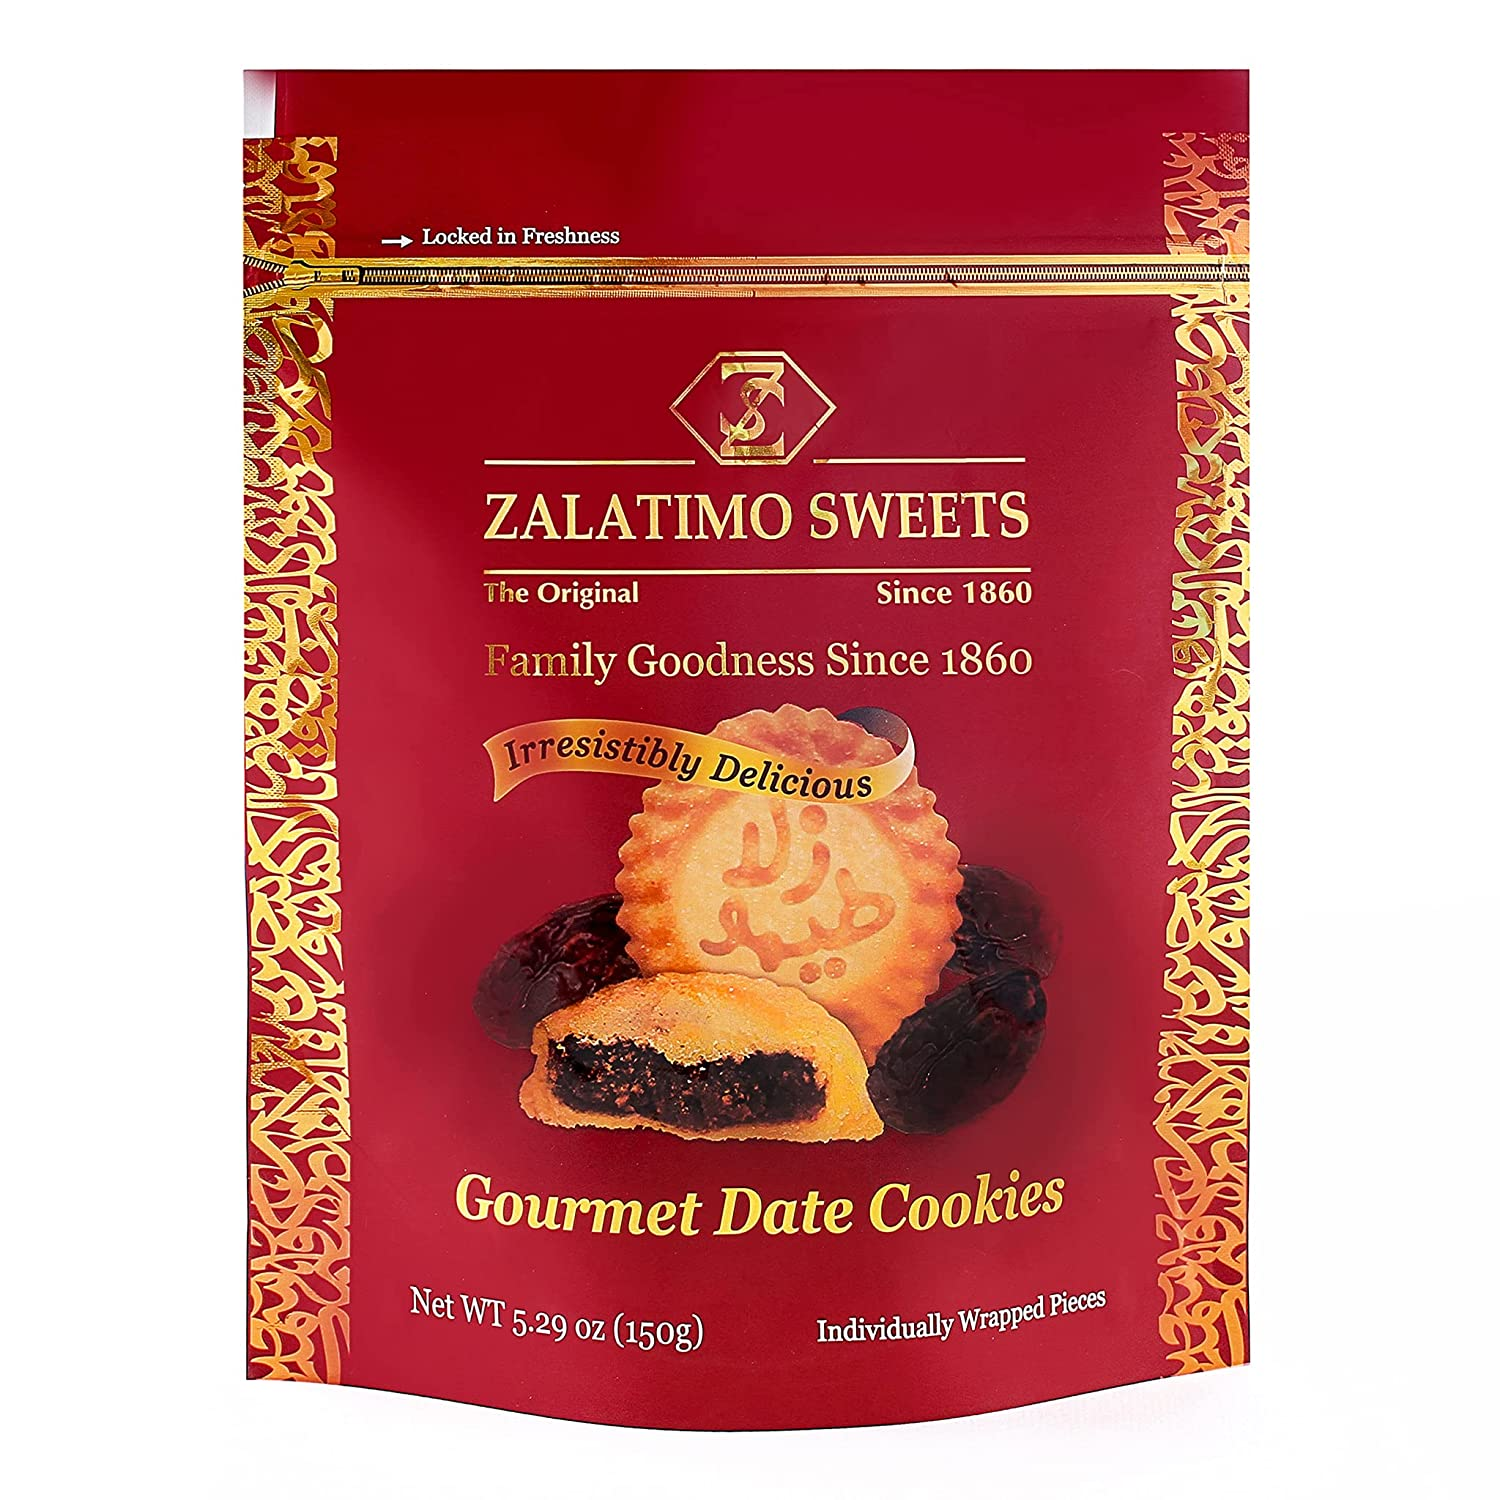 Zalatimo Sweets Since 1860 100% lowest price All-Natural Cookies Filled Max 58% OFF Date